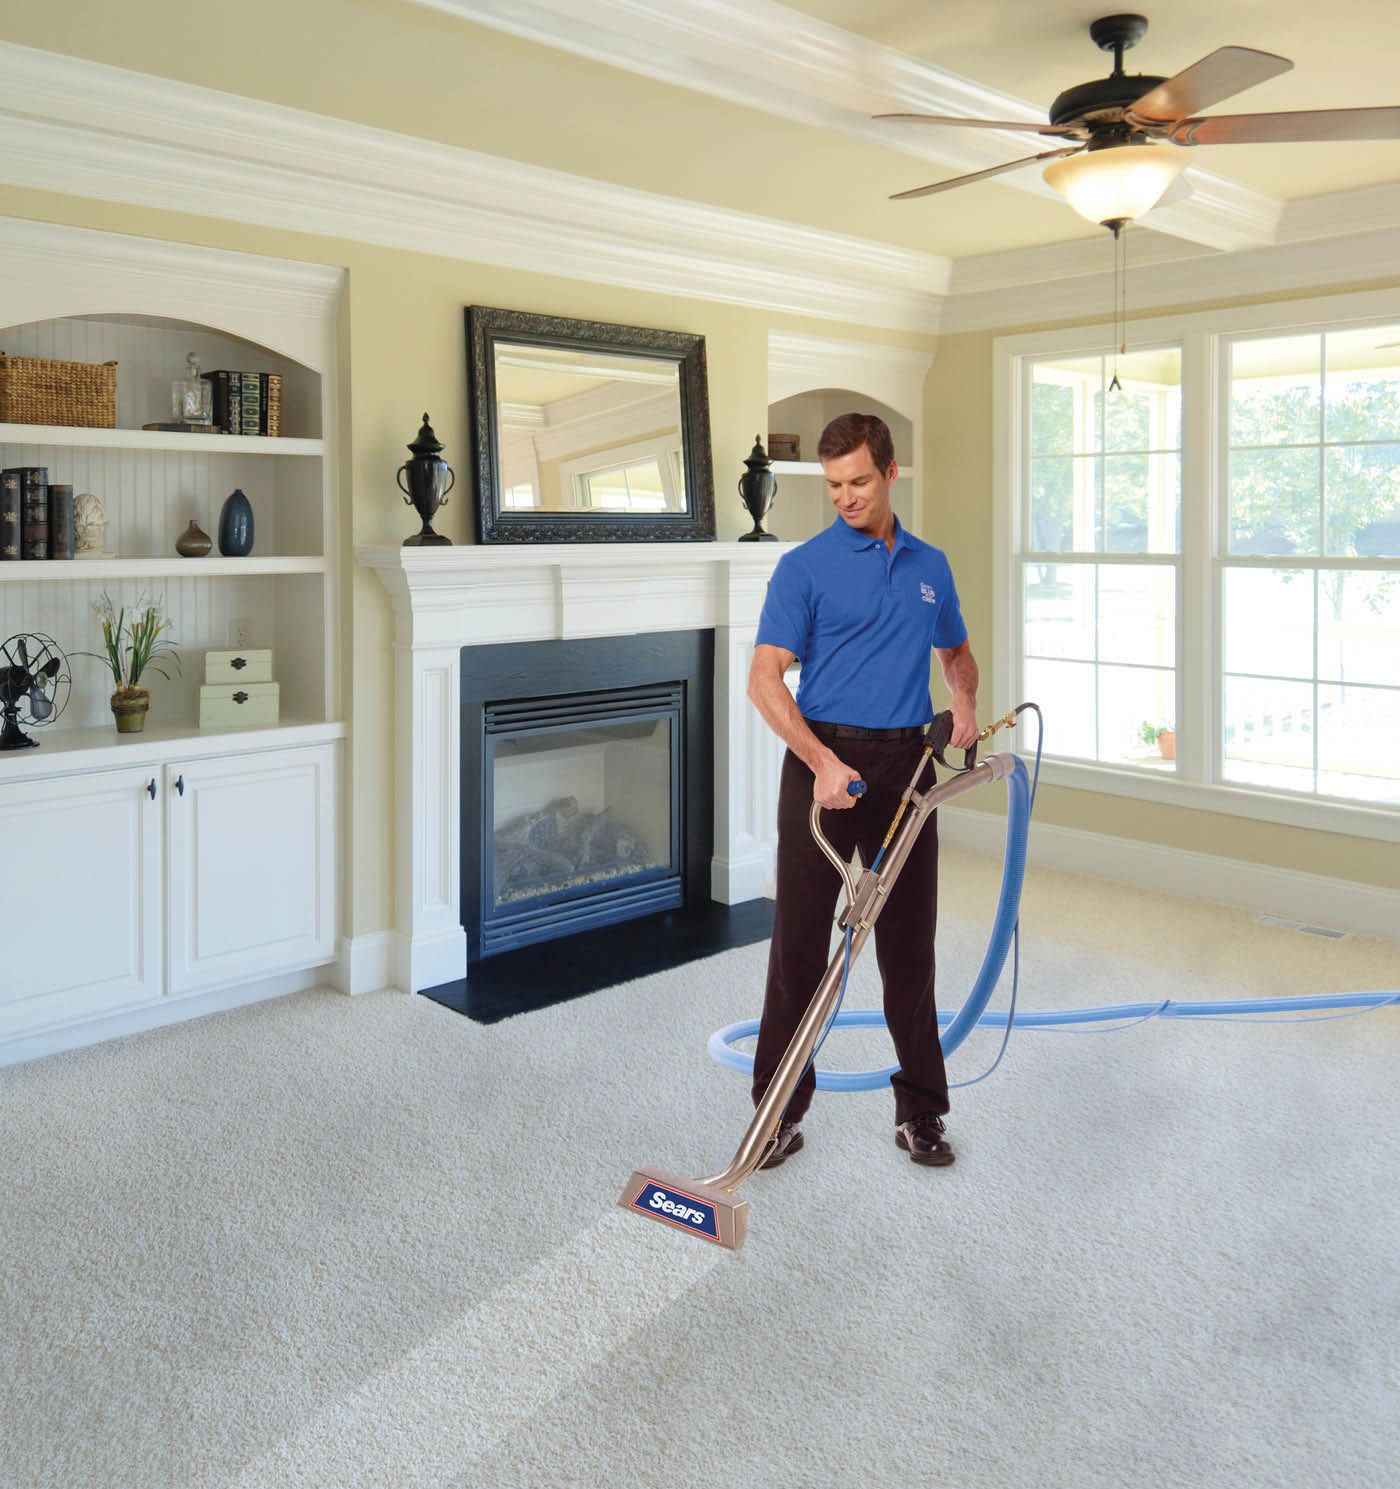 Buy now on amazon httpamzn2kzhk7h best hoover carpet melbourne carpet cleaning is cheap office cleaning in melbourne we provide carpet steam office cleaning commercial cleaning in melbourne cbd dailygadgetfo Gallery